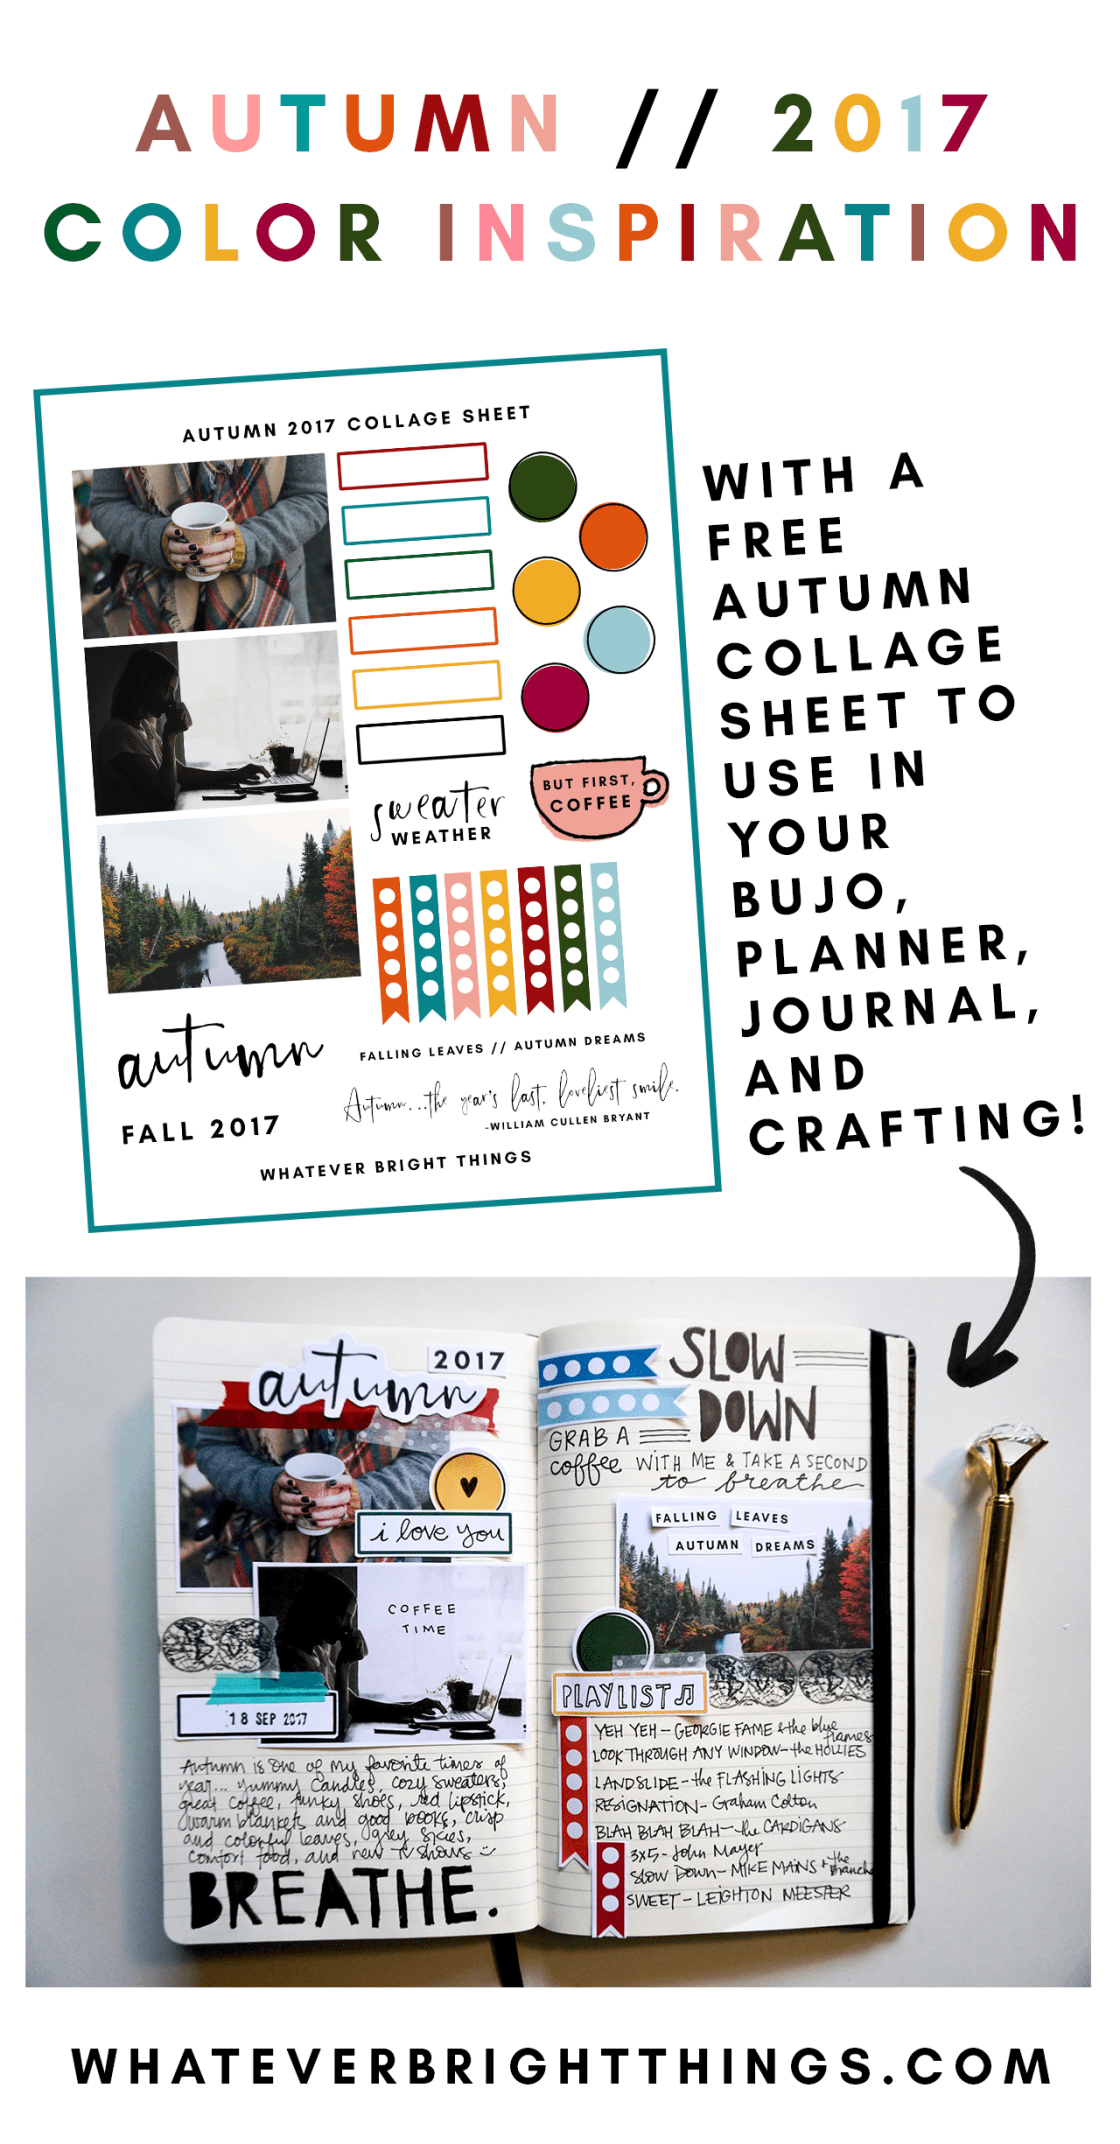 Ready for some major Autumn 2017 Color Inspiration? In this post, I share a fun Fall color palette and a FREE Autumn 2017 Collage Sheet. Use it to decorate your bullet journal, planner, notebook, or journal with fall quotes and hues.